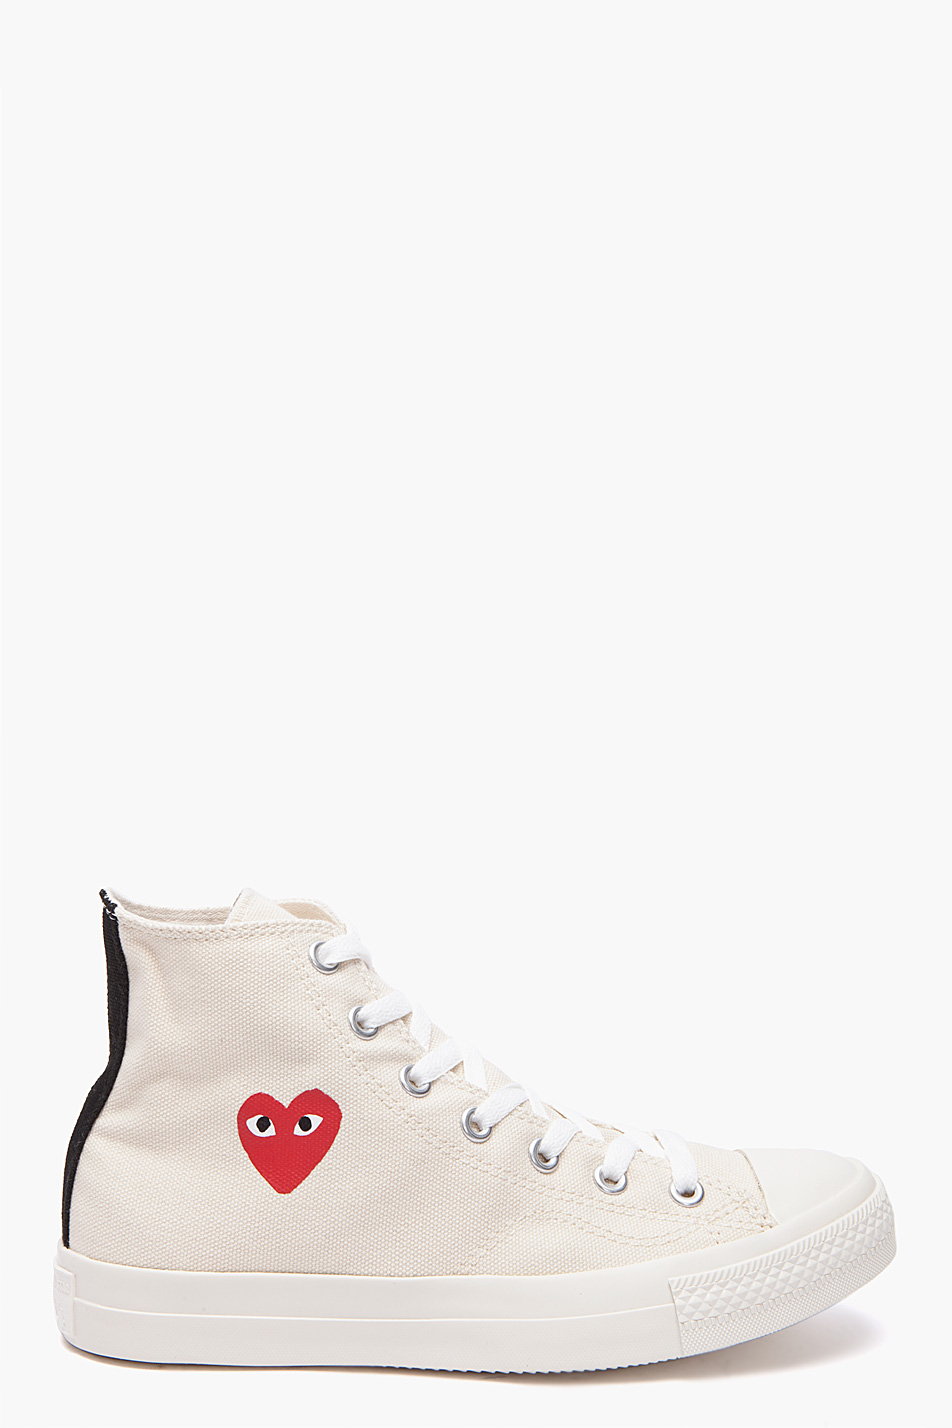 play comme des gar ons converse red heart sneakers in. Black Bedroom Furniture Sets. Home Design Ideas